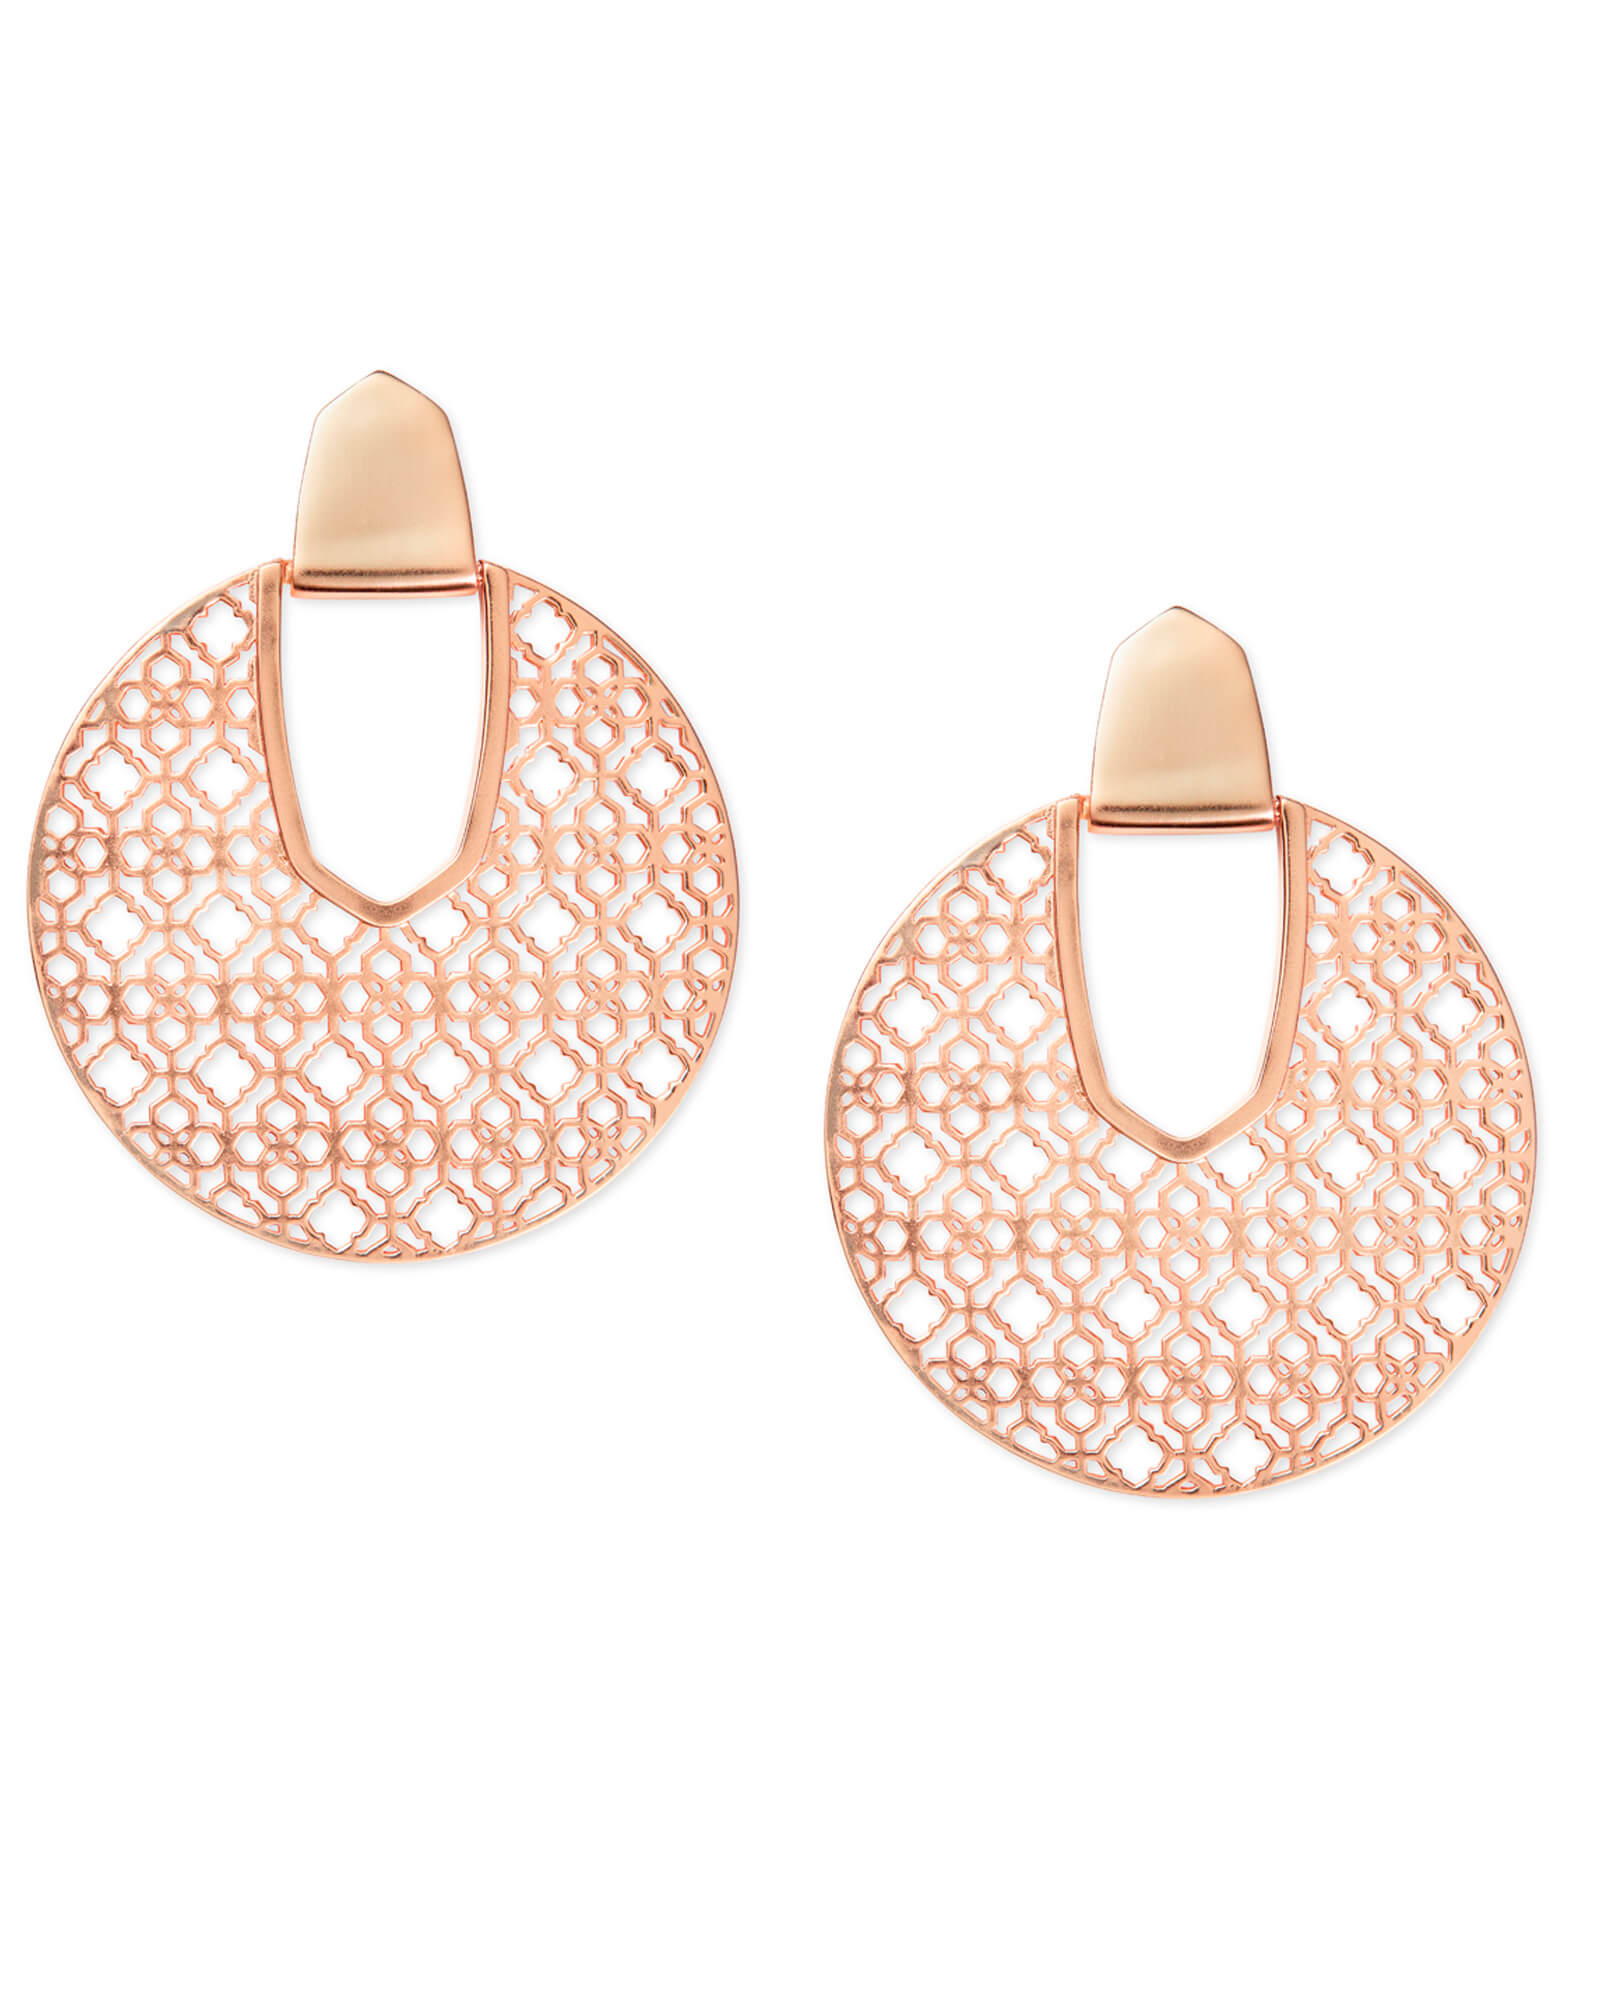 Diane Rose Gold Statement Earrings in Rose Gold Filigree